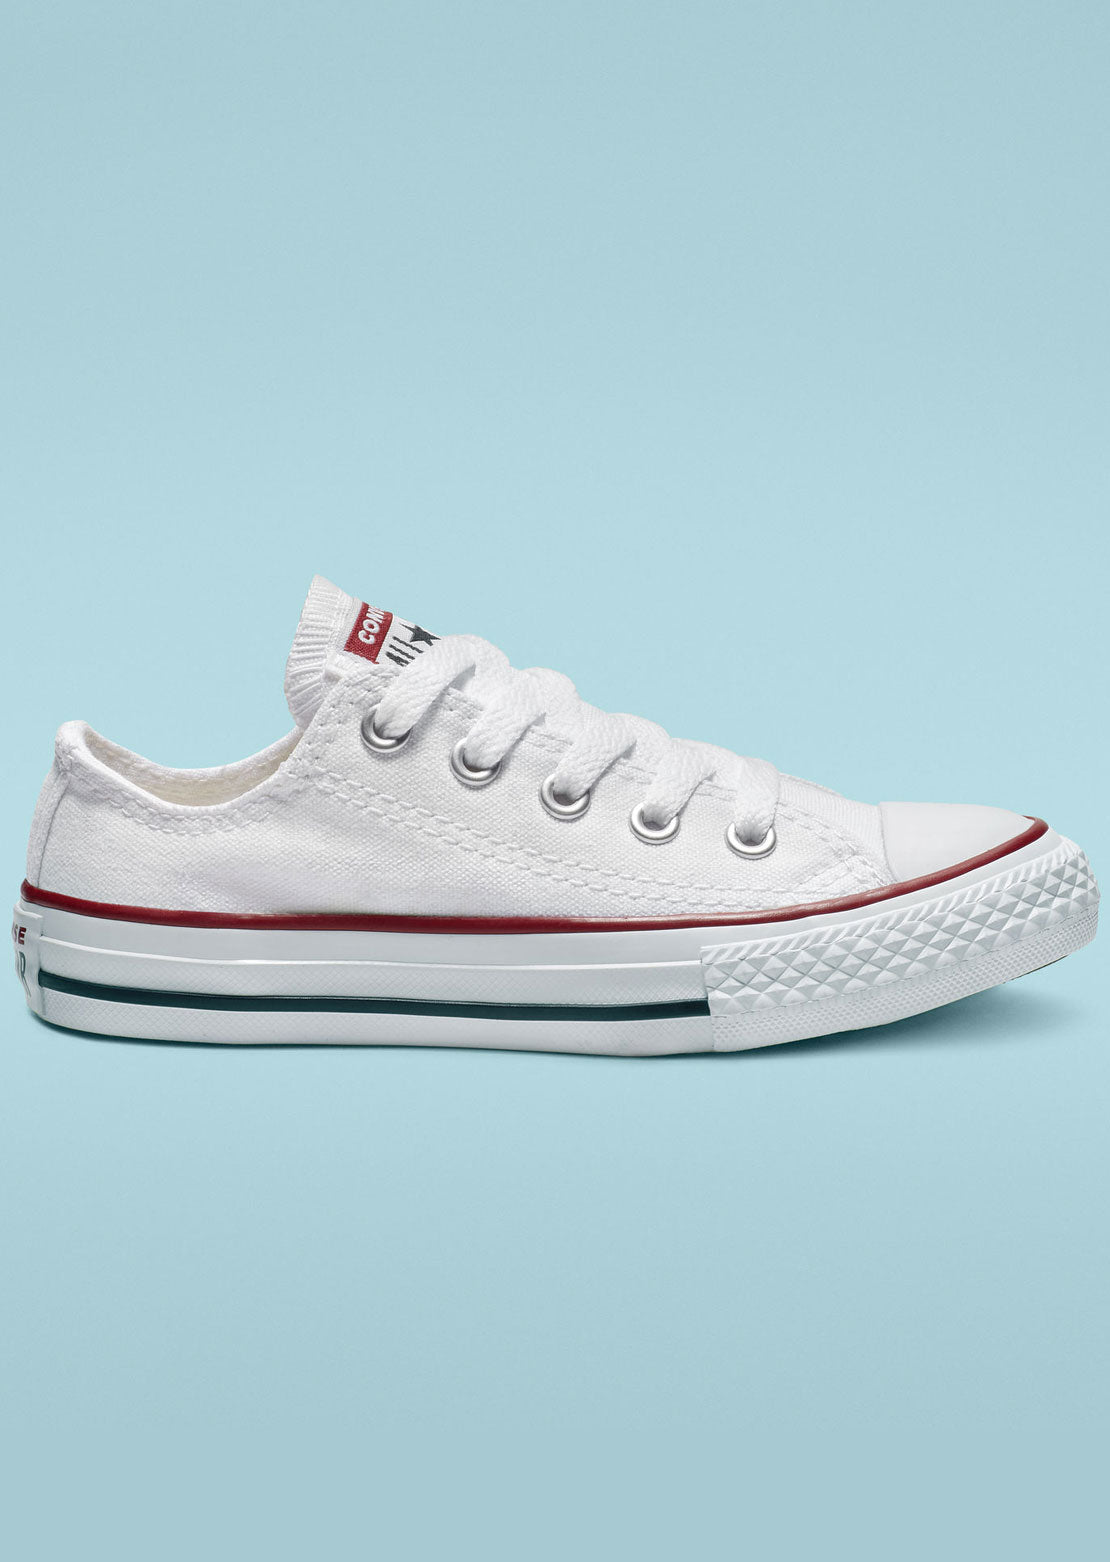 Converse Junior Chuck Taylor Low Top Shoes 3J256C OX/Optical White